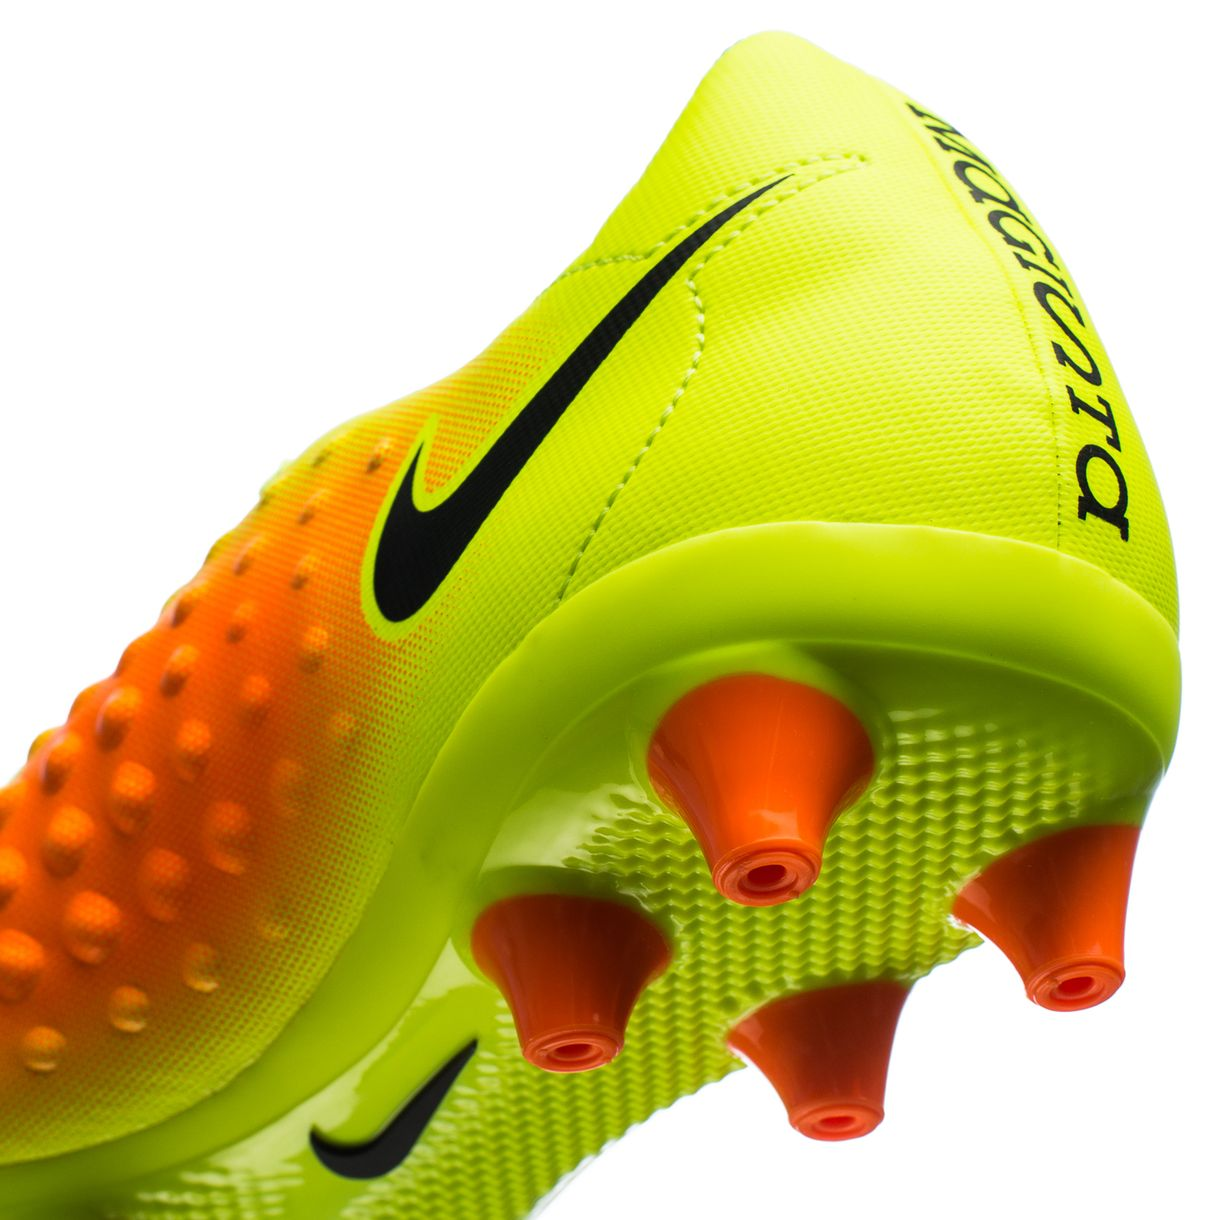 The Best Soccer Cleats - Soccer Cleat Reviews